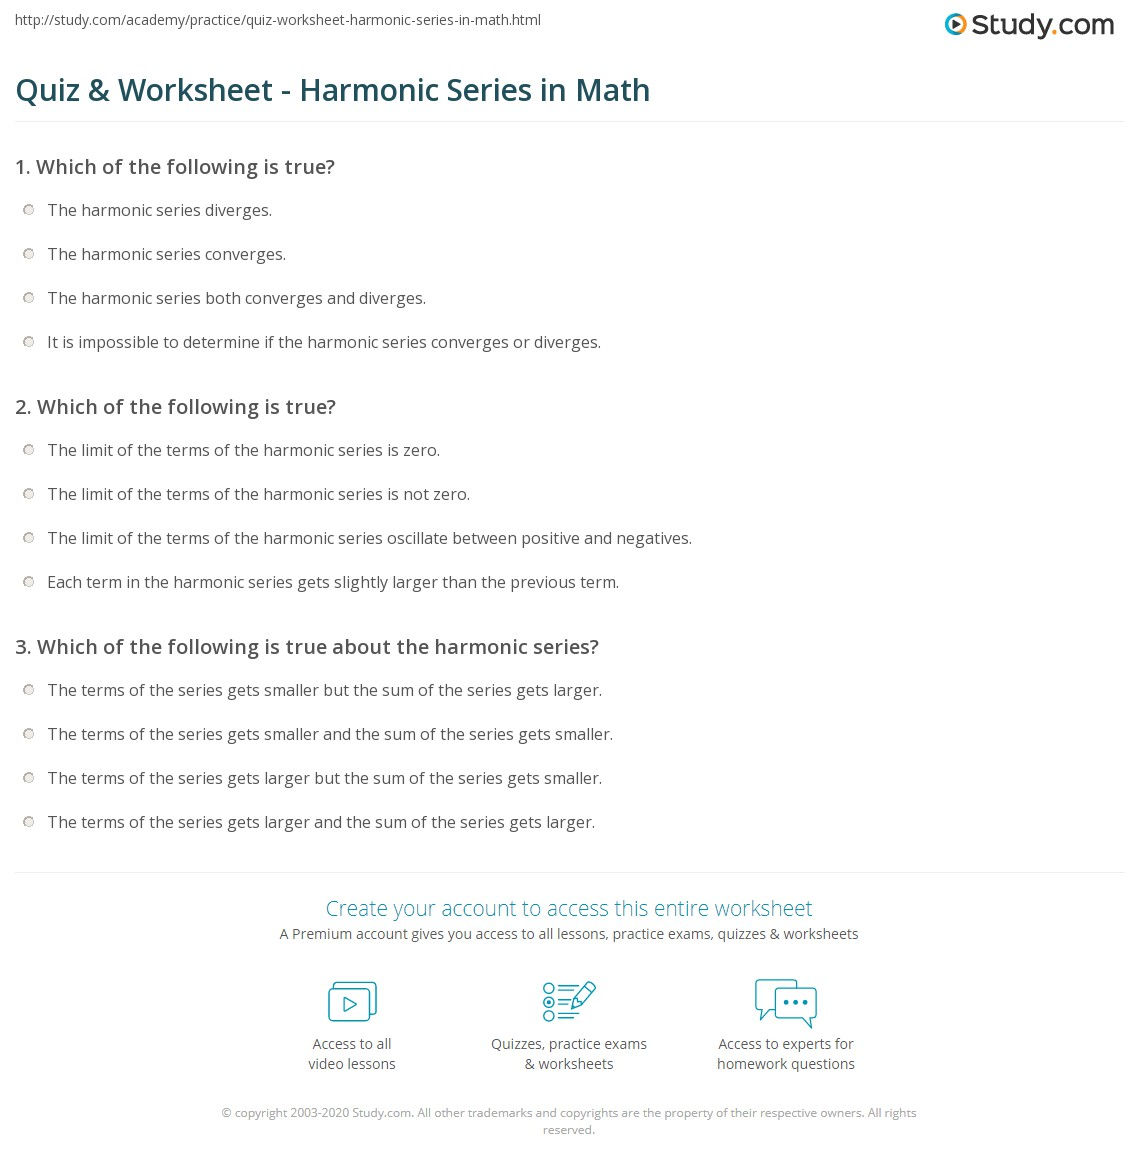 math worksheet : quiz  worksheet  harmonic series in math  study  : Math Sequencing Worksheets